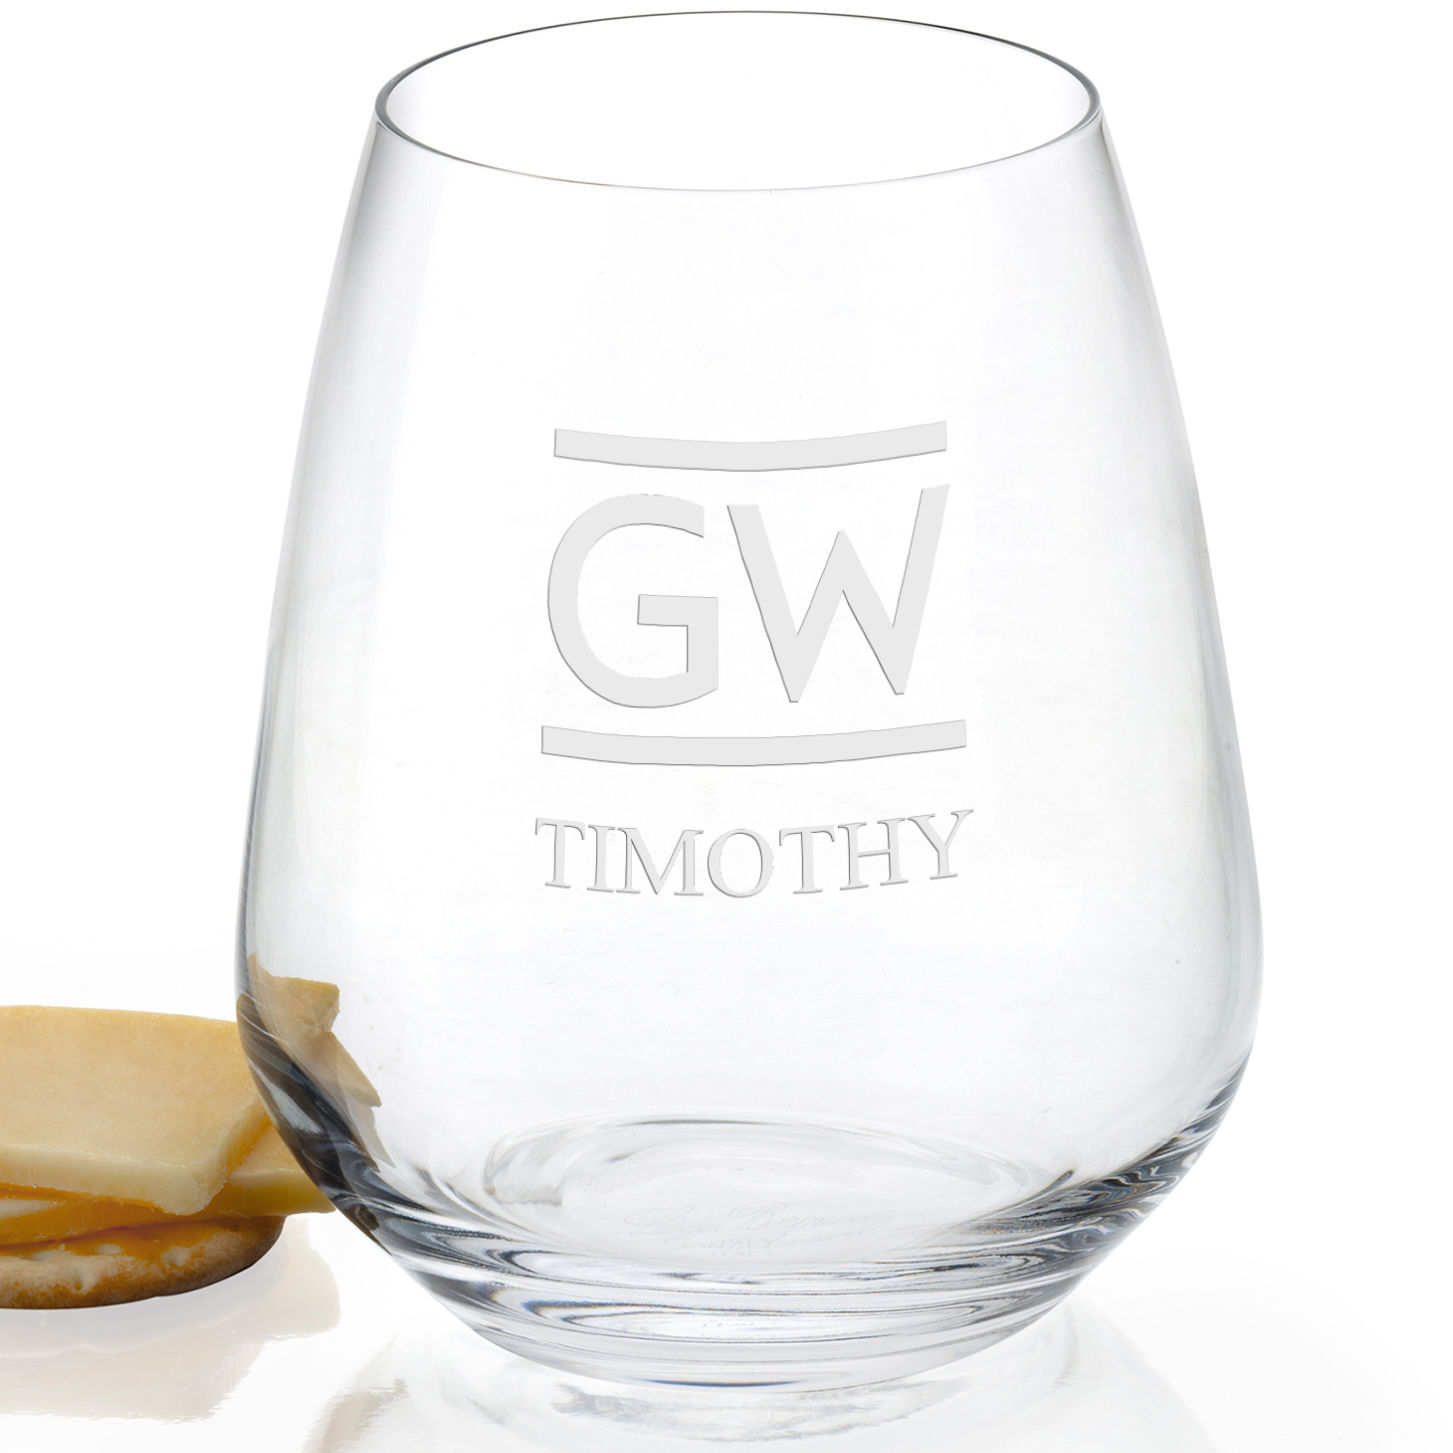 George Washington University Stemless Wine Glasses - Set of 2 - Image 2